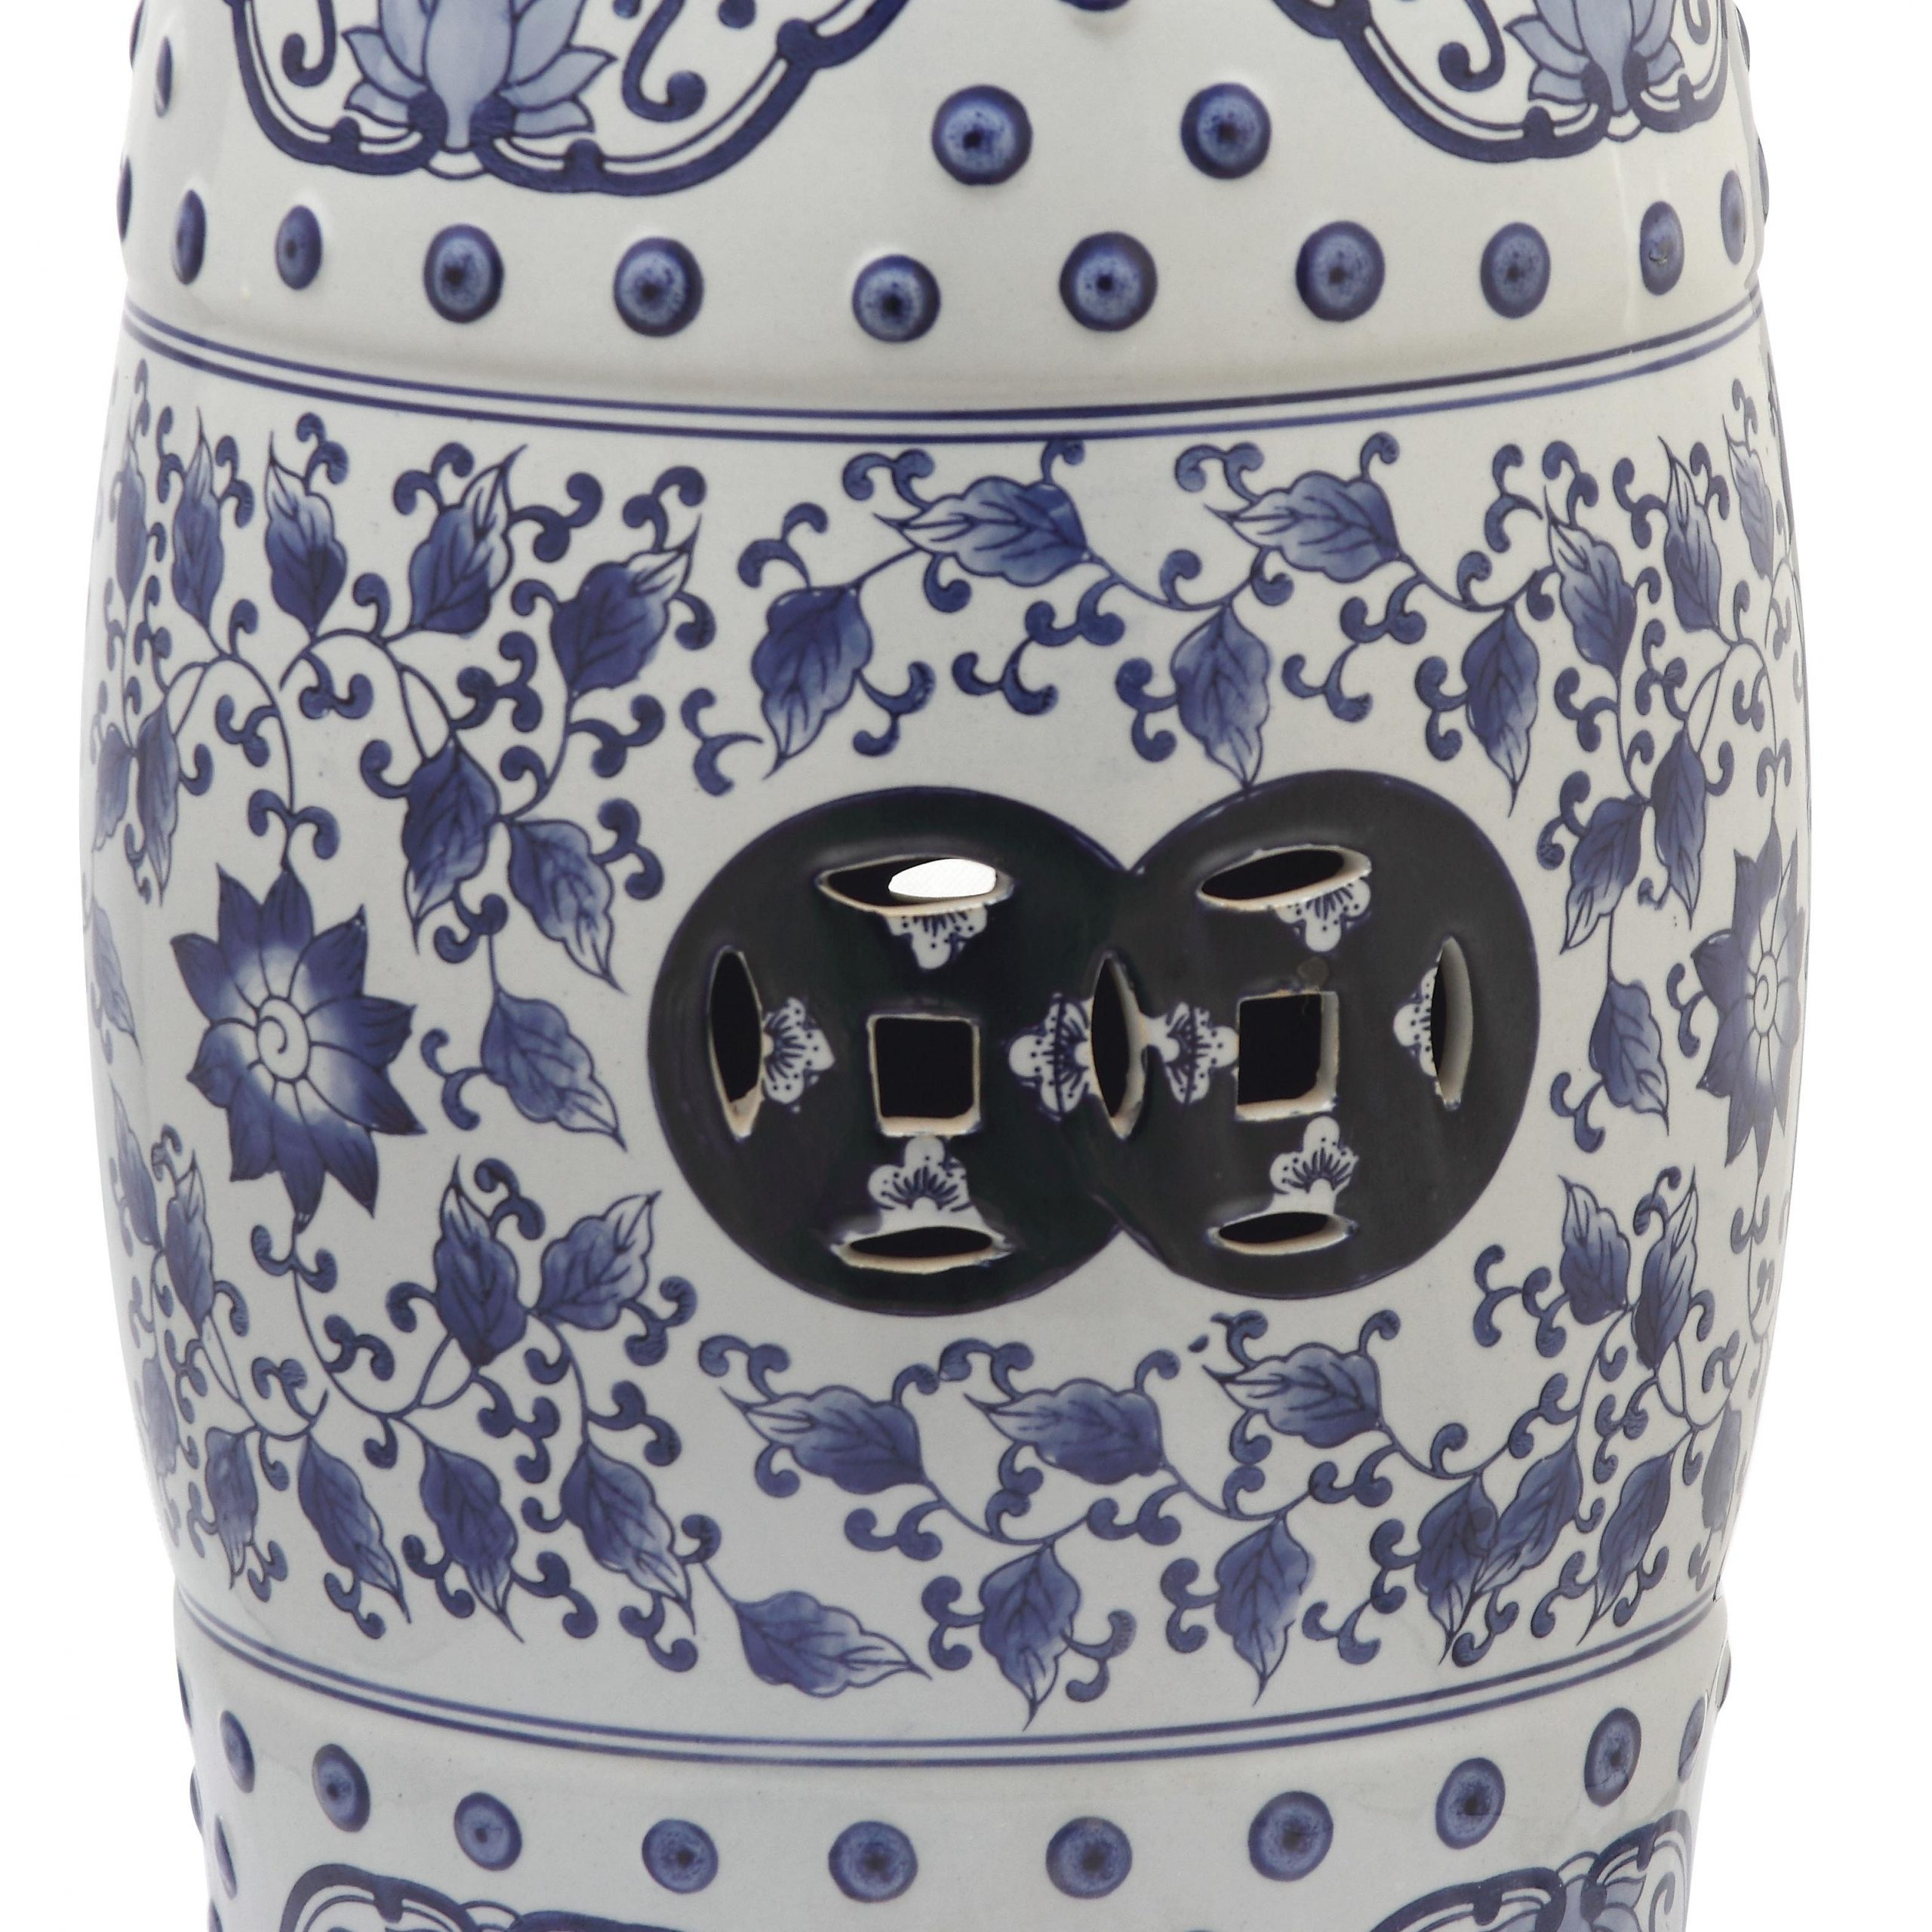 Williar Cherry Blossom Ceramic Garden Stools For Most Recent Blue Ceramic Garden Stools You'll Love In (View 6 of 30)